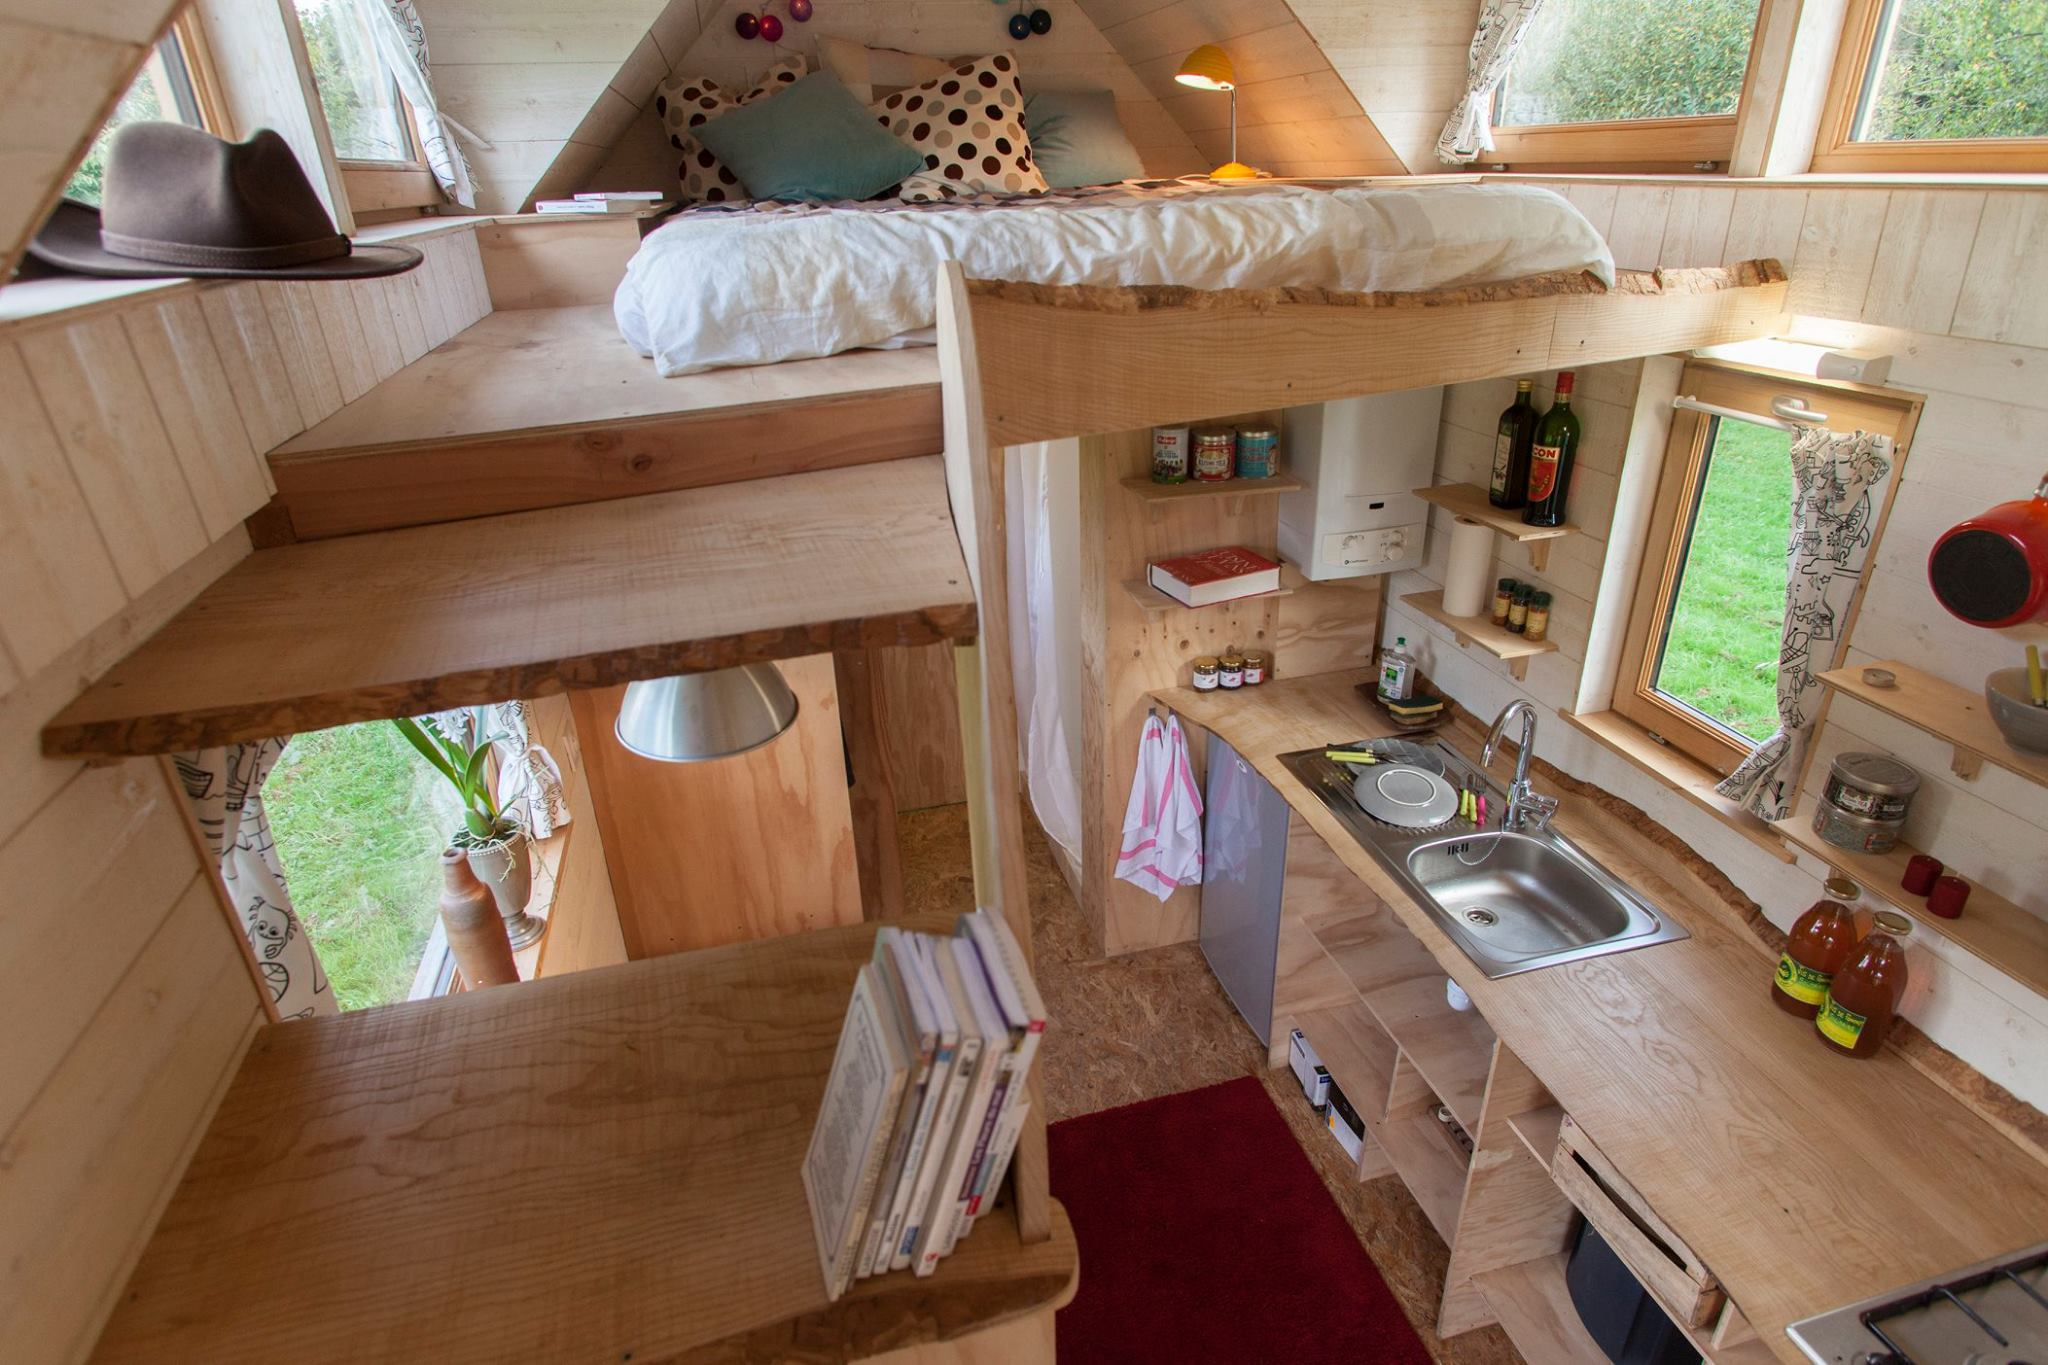 La tiny house la maison miniature elle for Small house design inside and outside